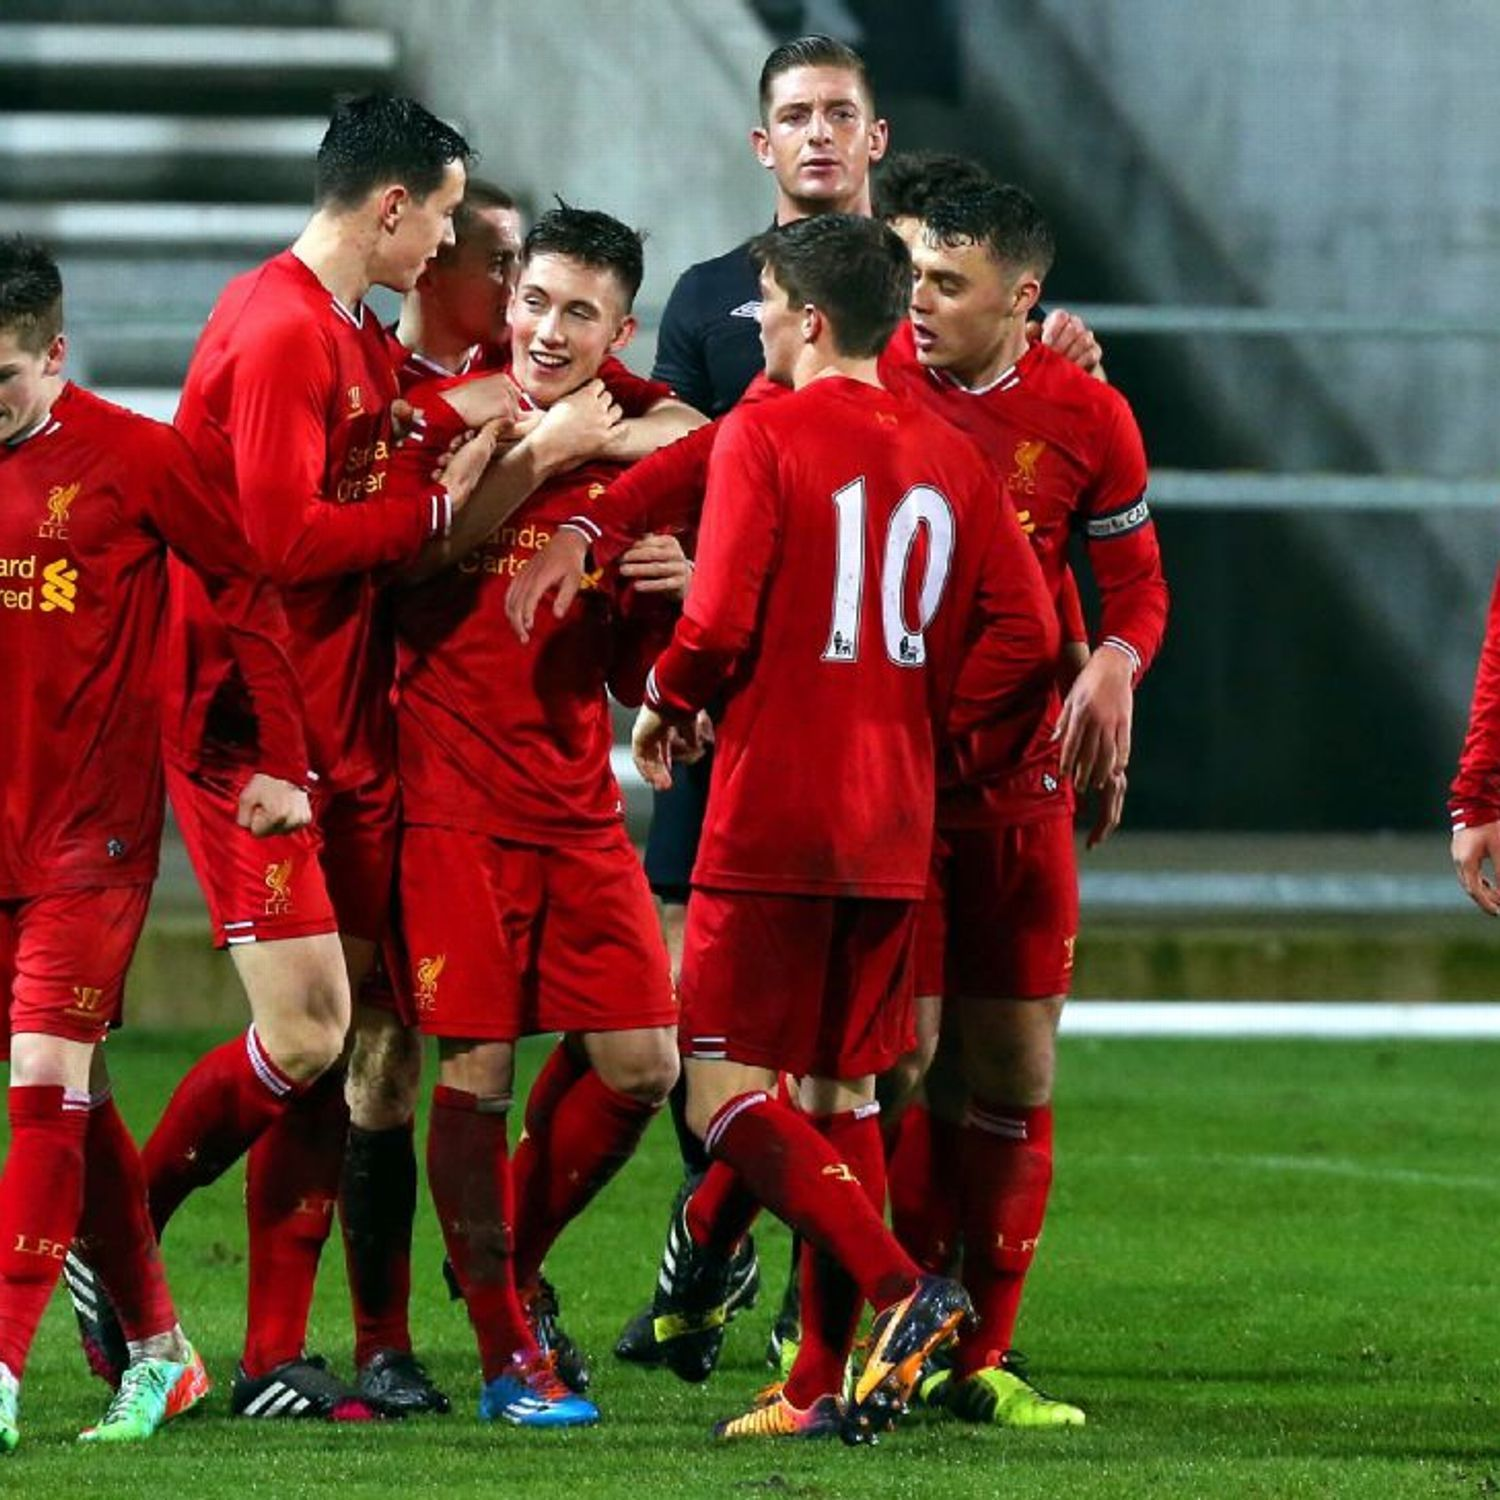 Liverpool's Harry Wilson confident and motivated ahead of